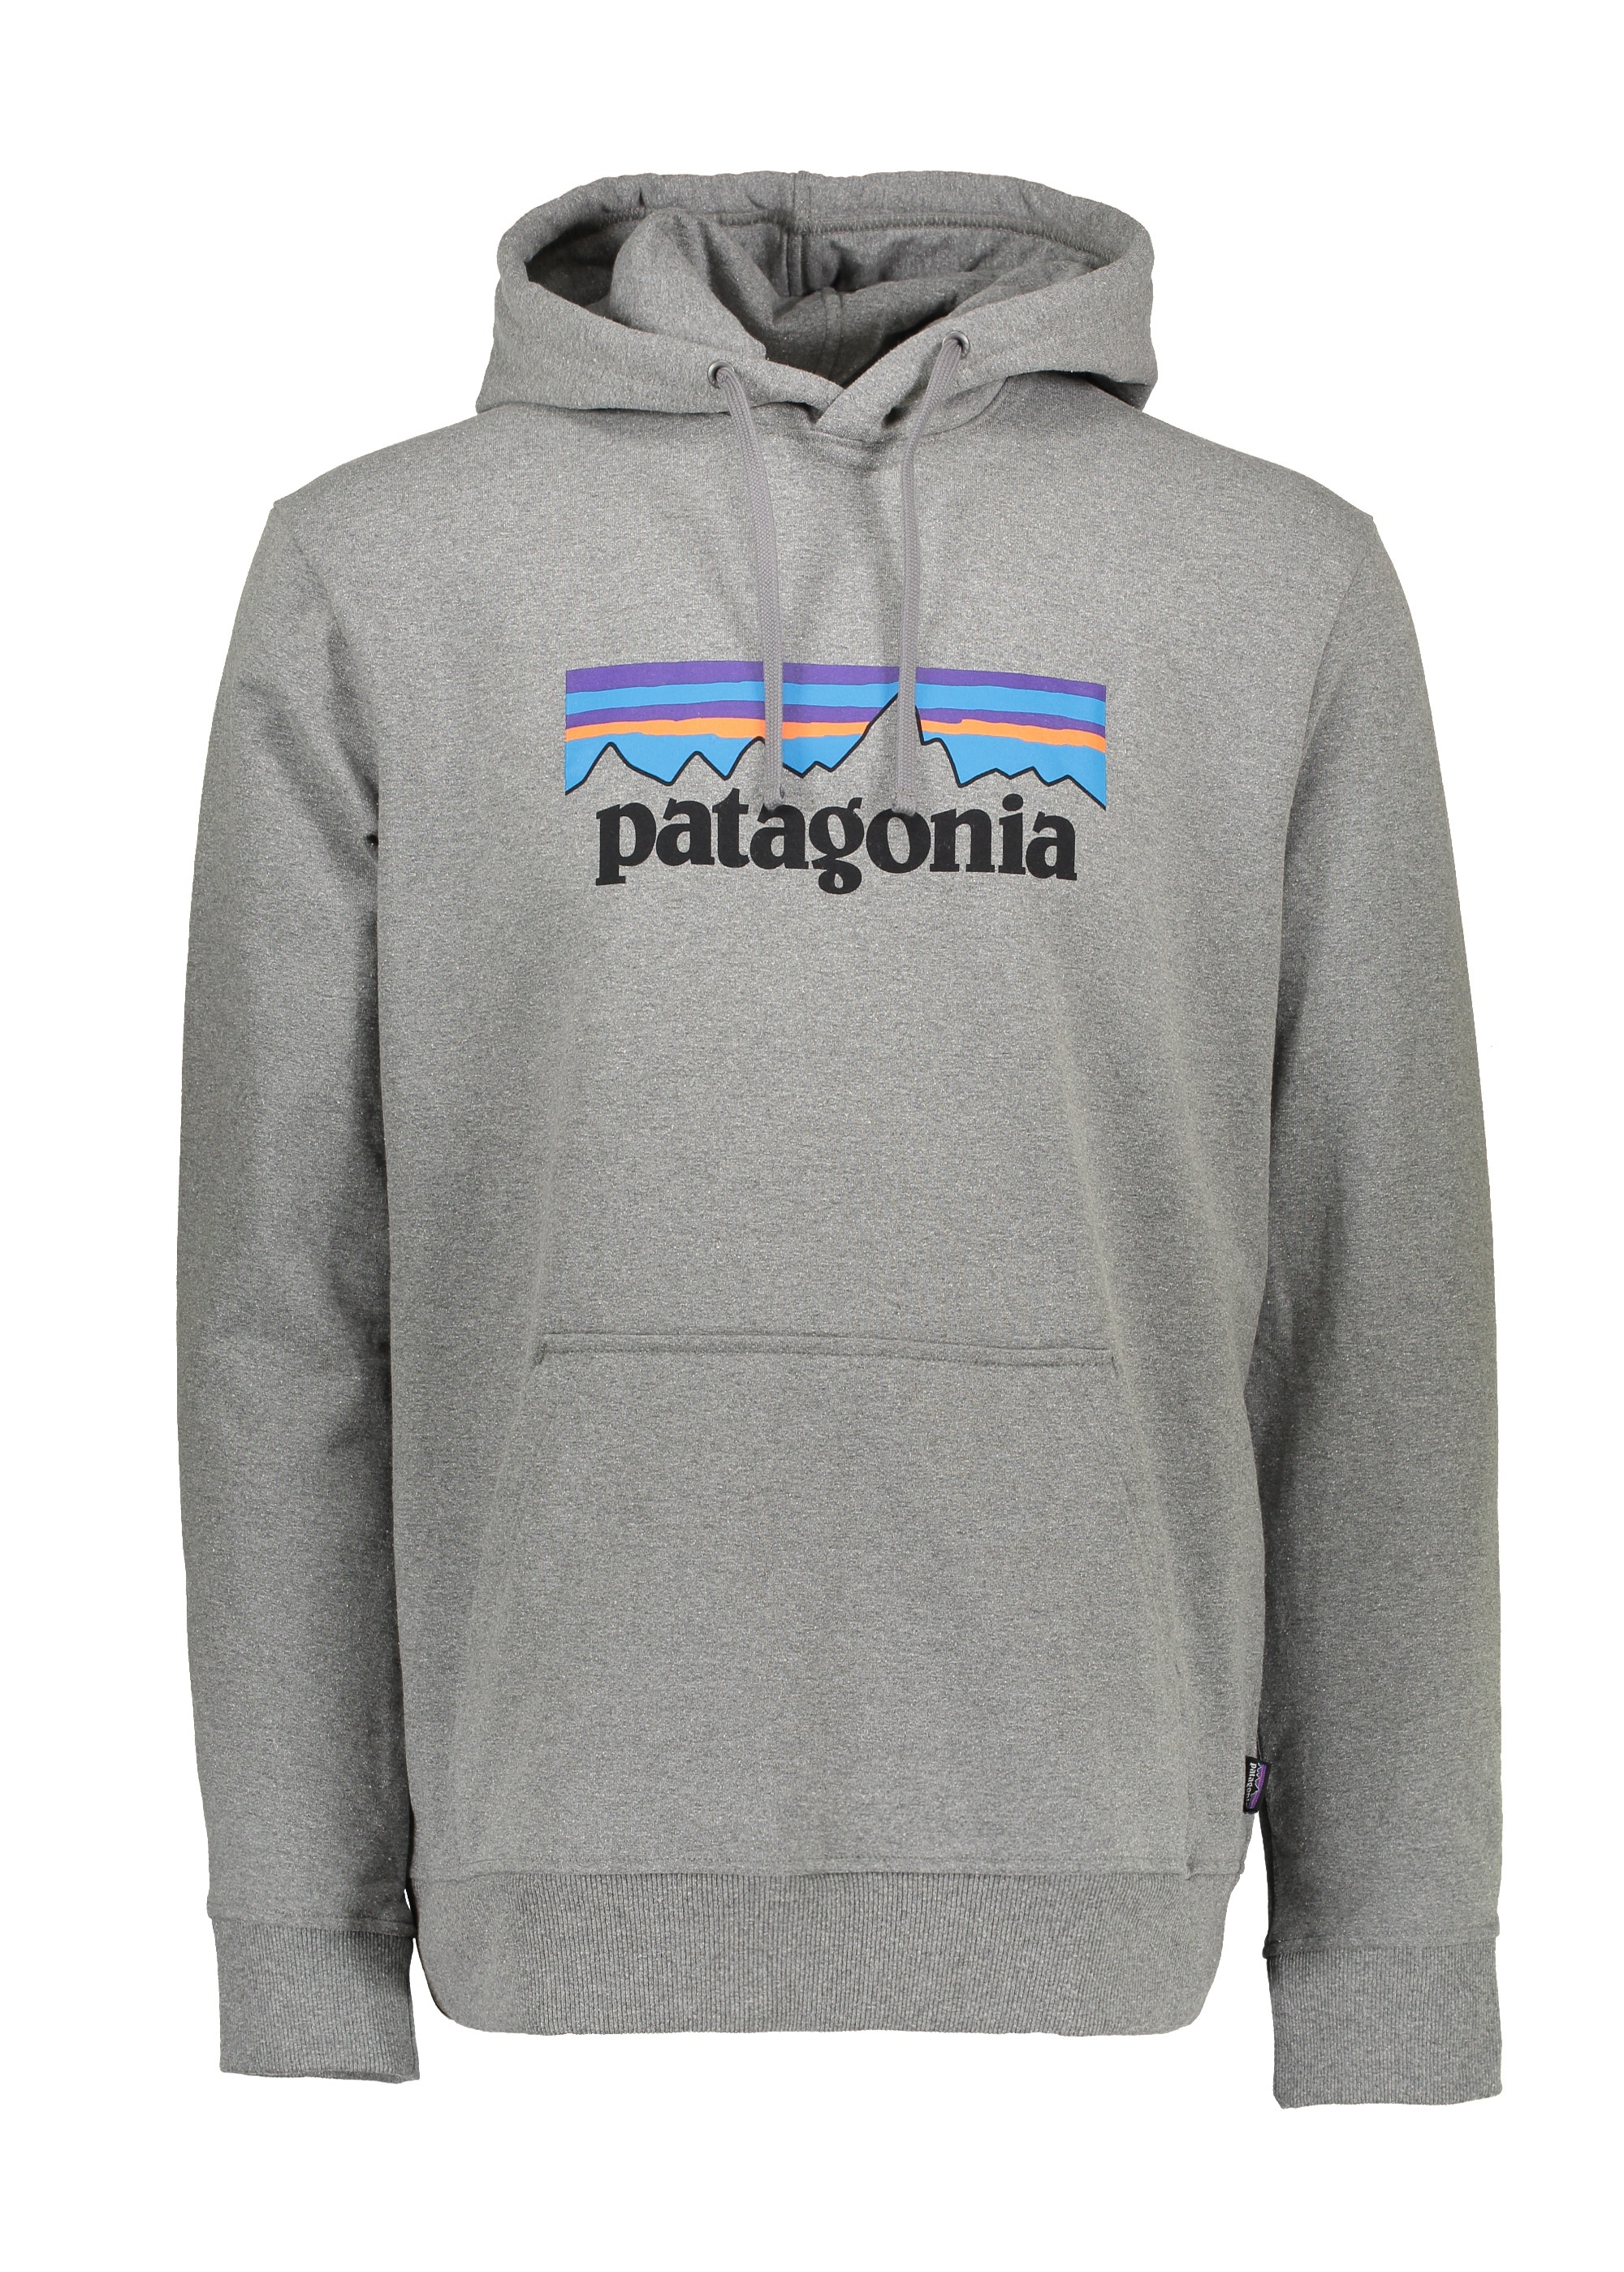 cd581532c93 Patagonia P-6 Logo Uprisal Hoody - Gravel Heather - Hoodies from ...